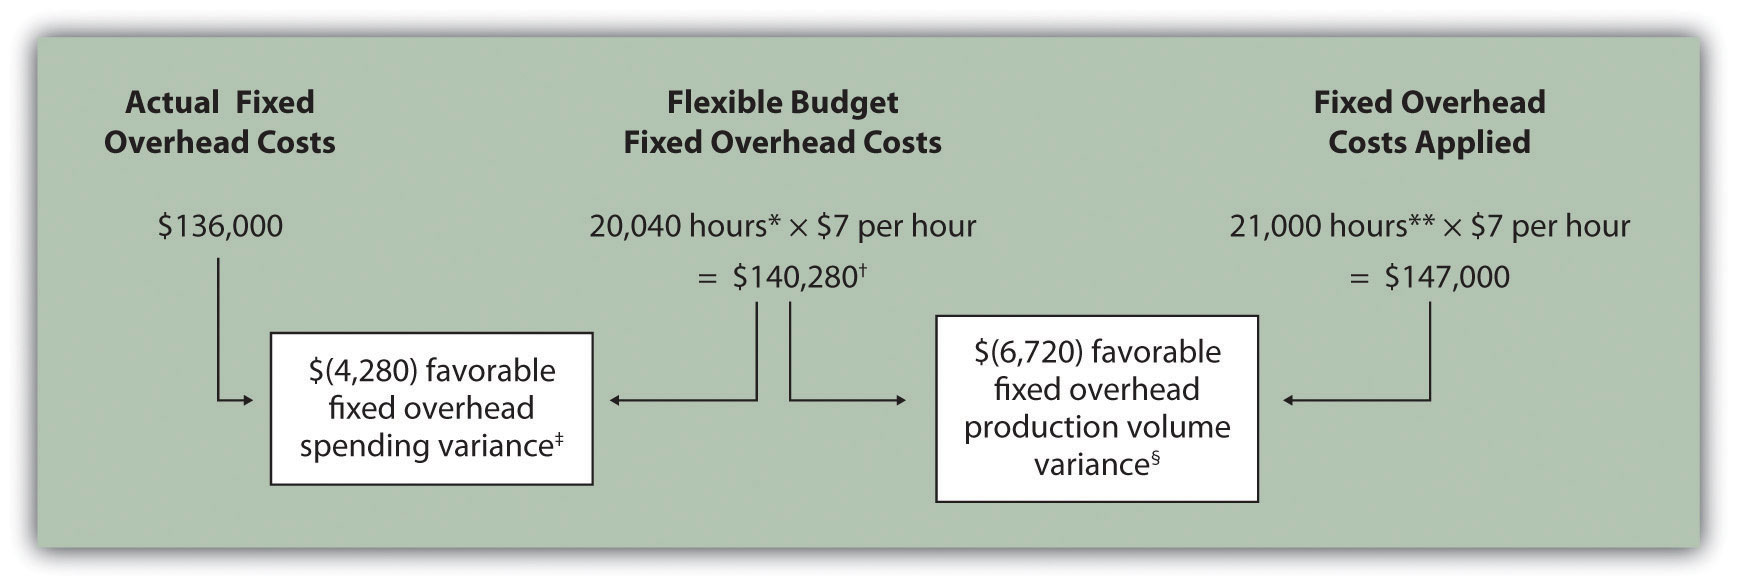 Fixed Manufacturing Overhead Variance Analysis | Accounting